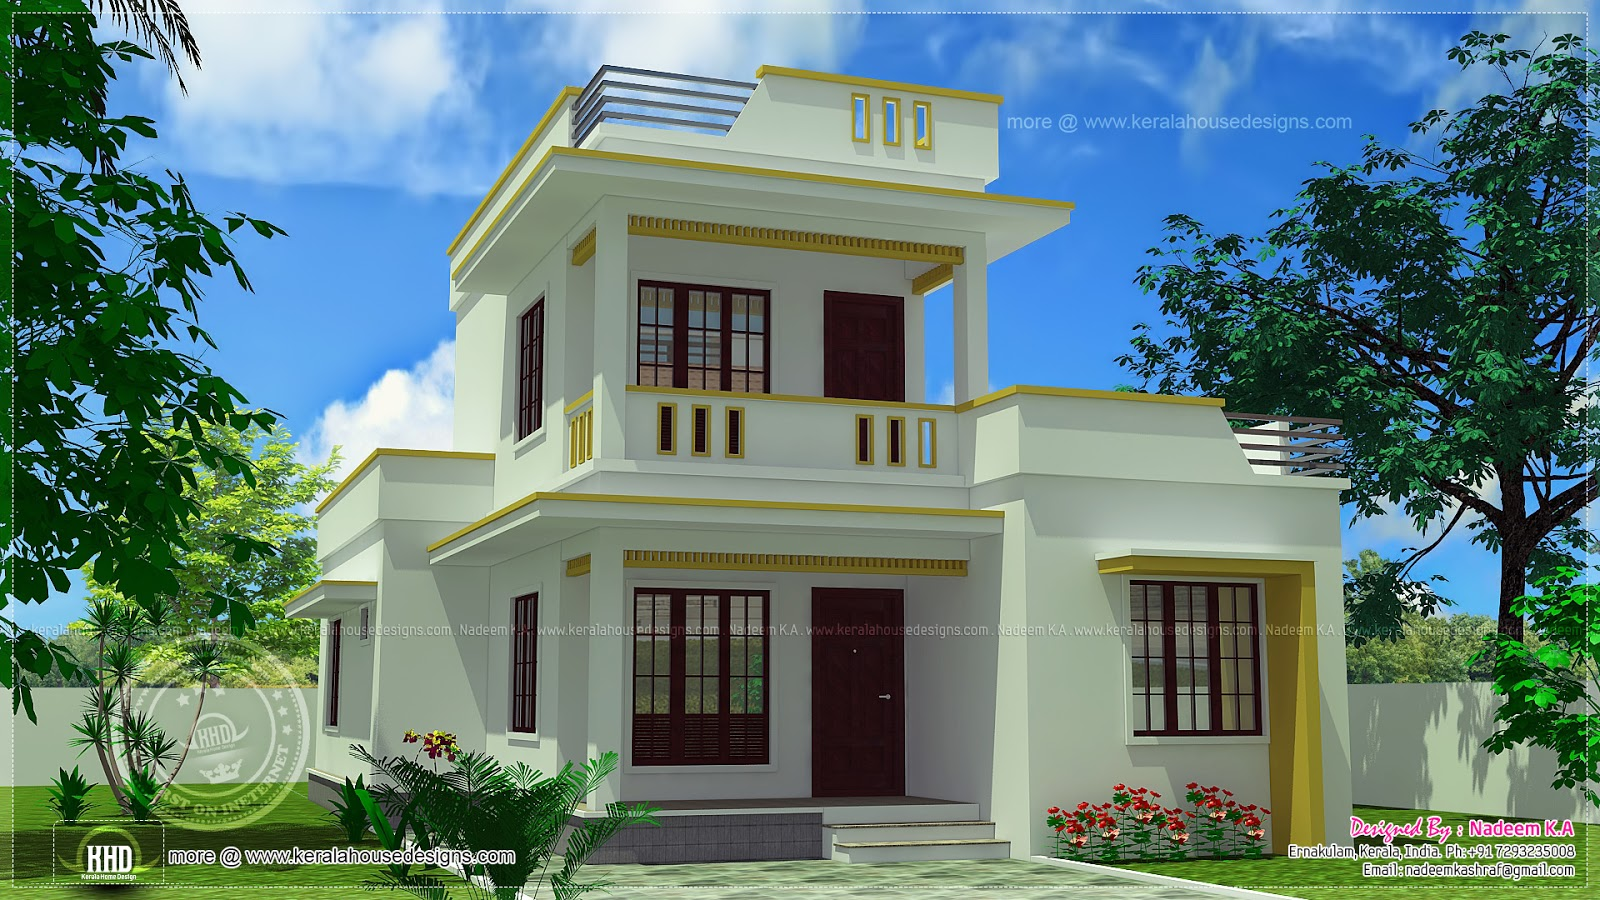 August 2013 kerala home design and floor plans Latest simple house design